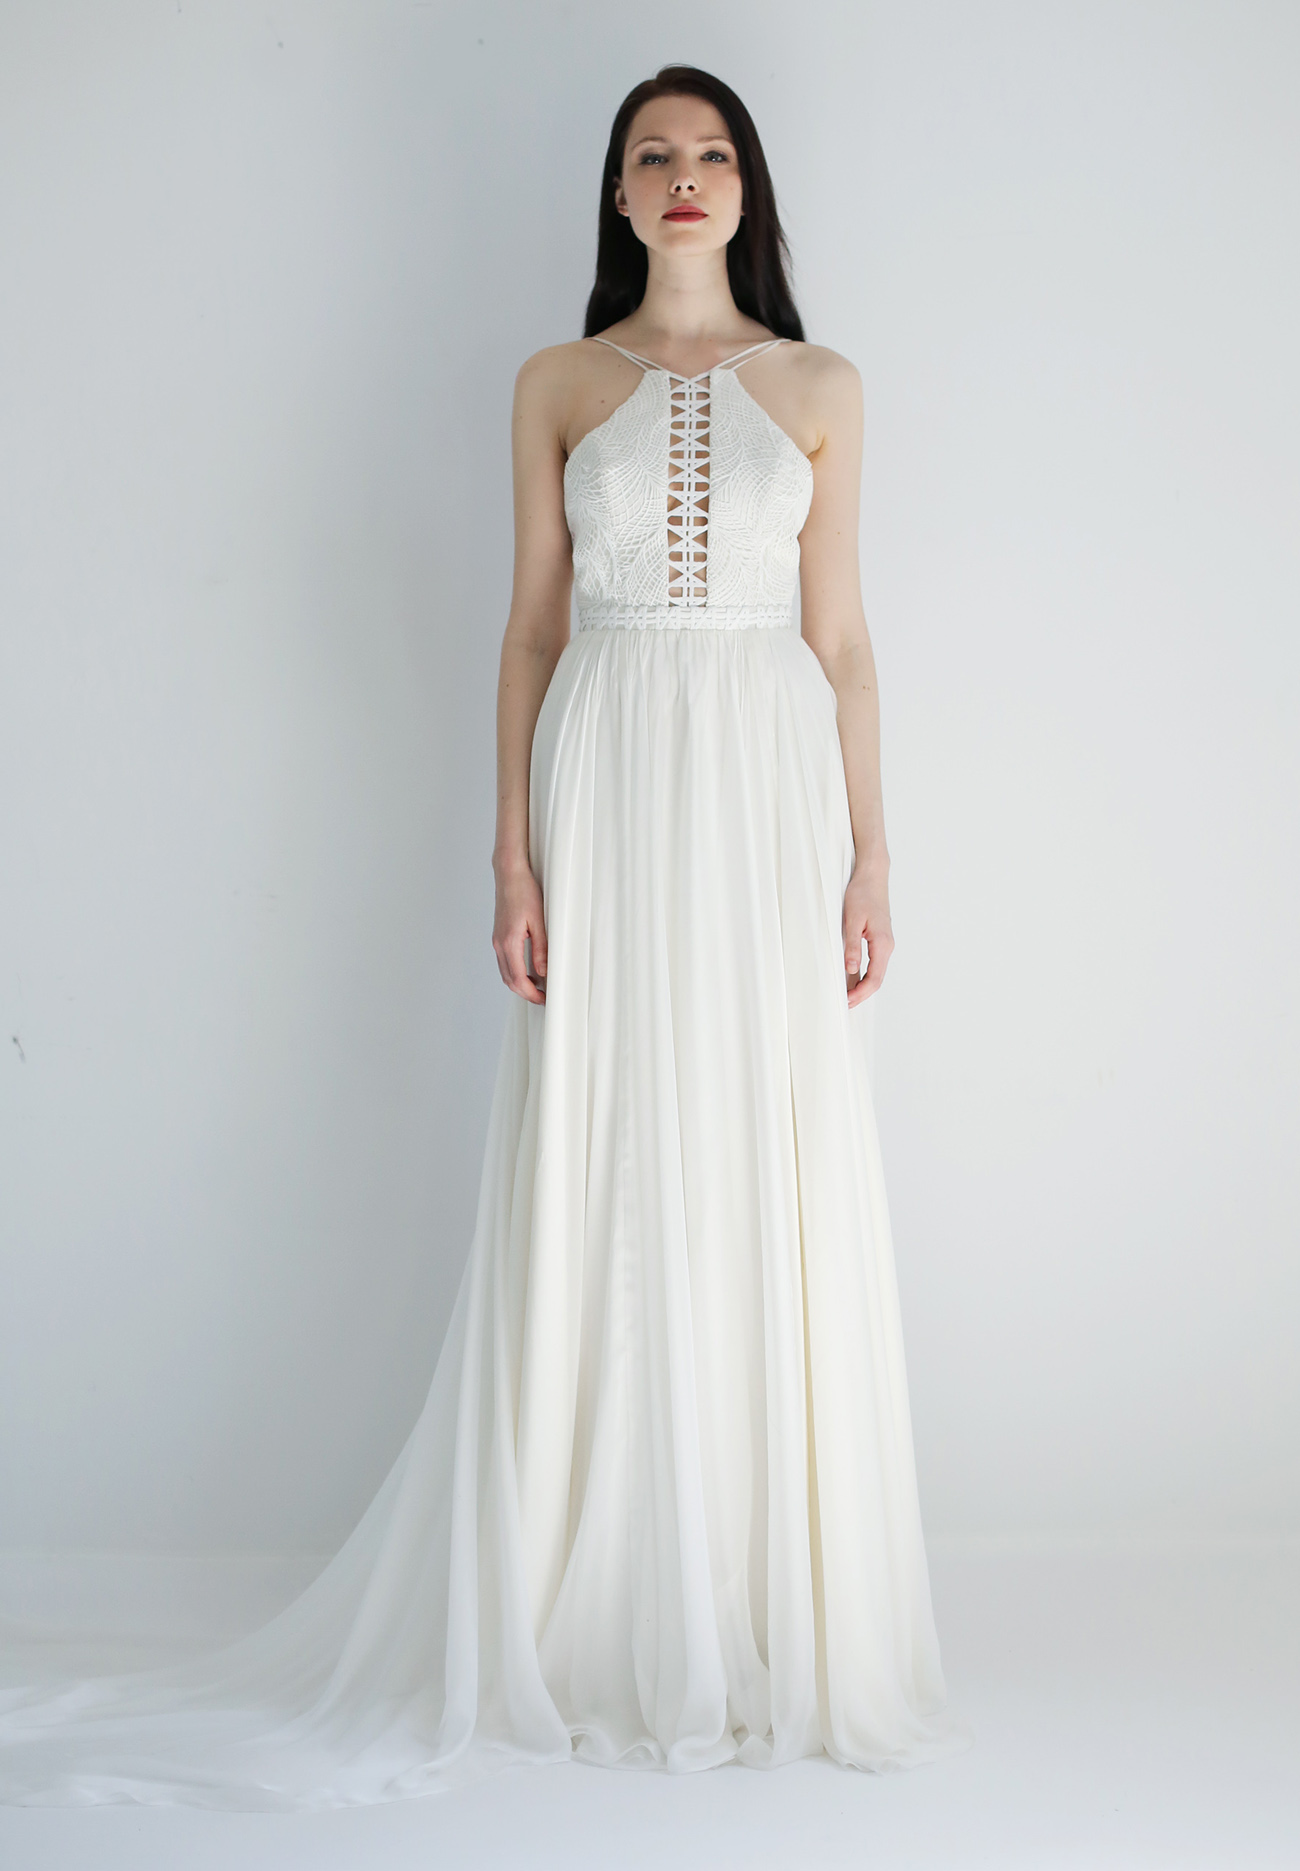 Tamaryn gown by Leanne Marsall